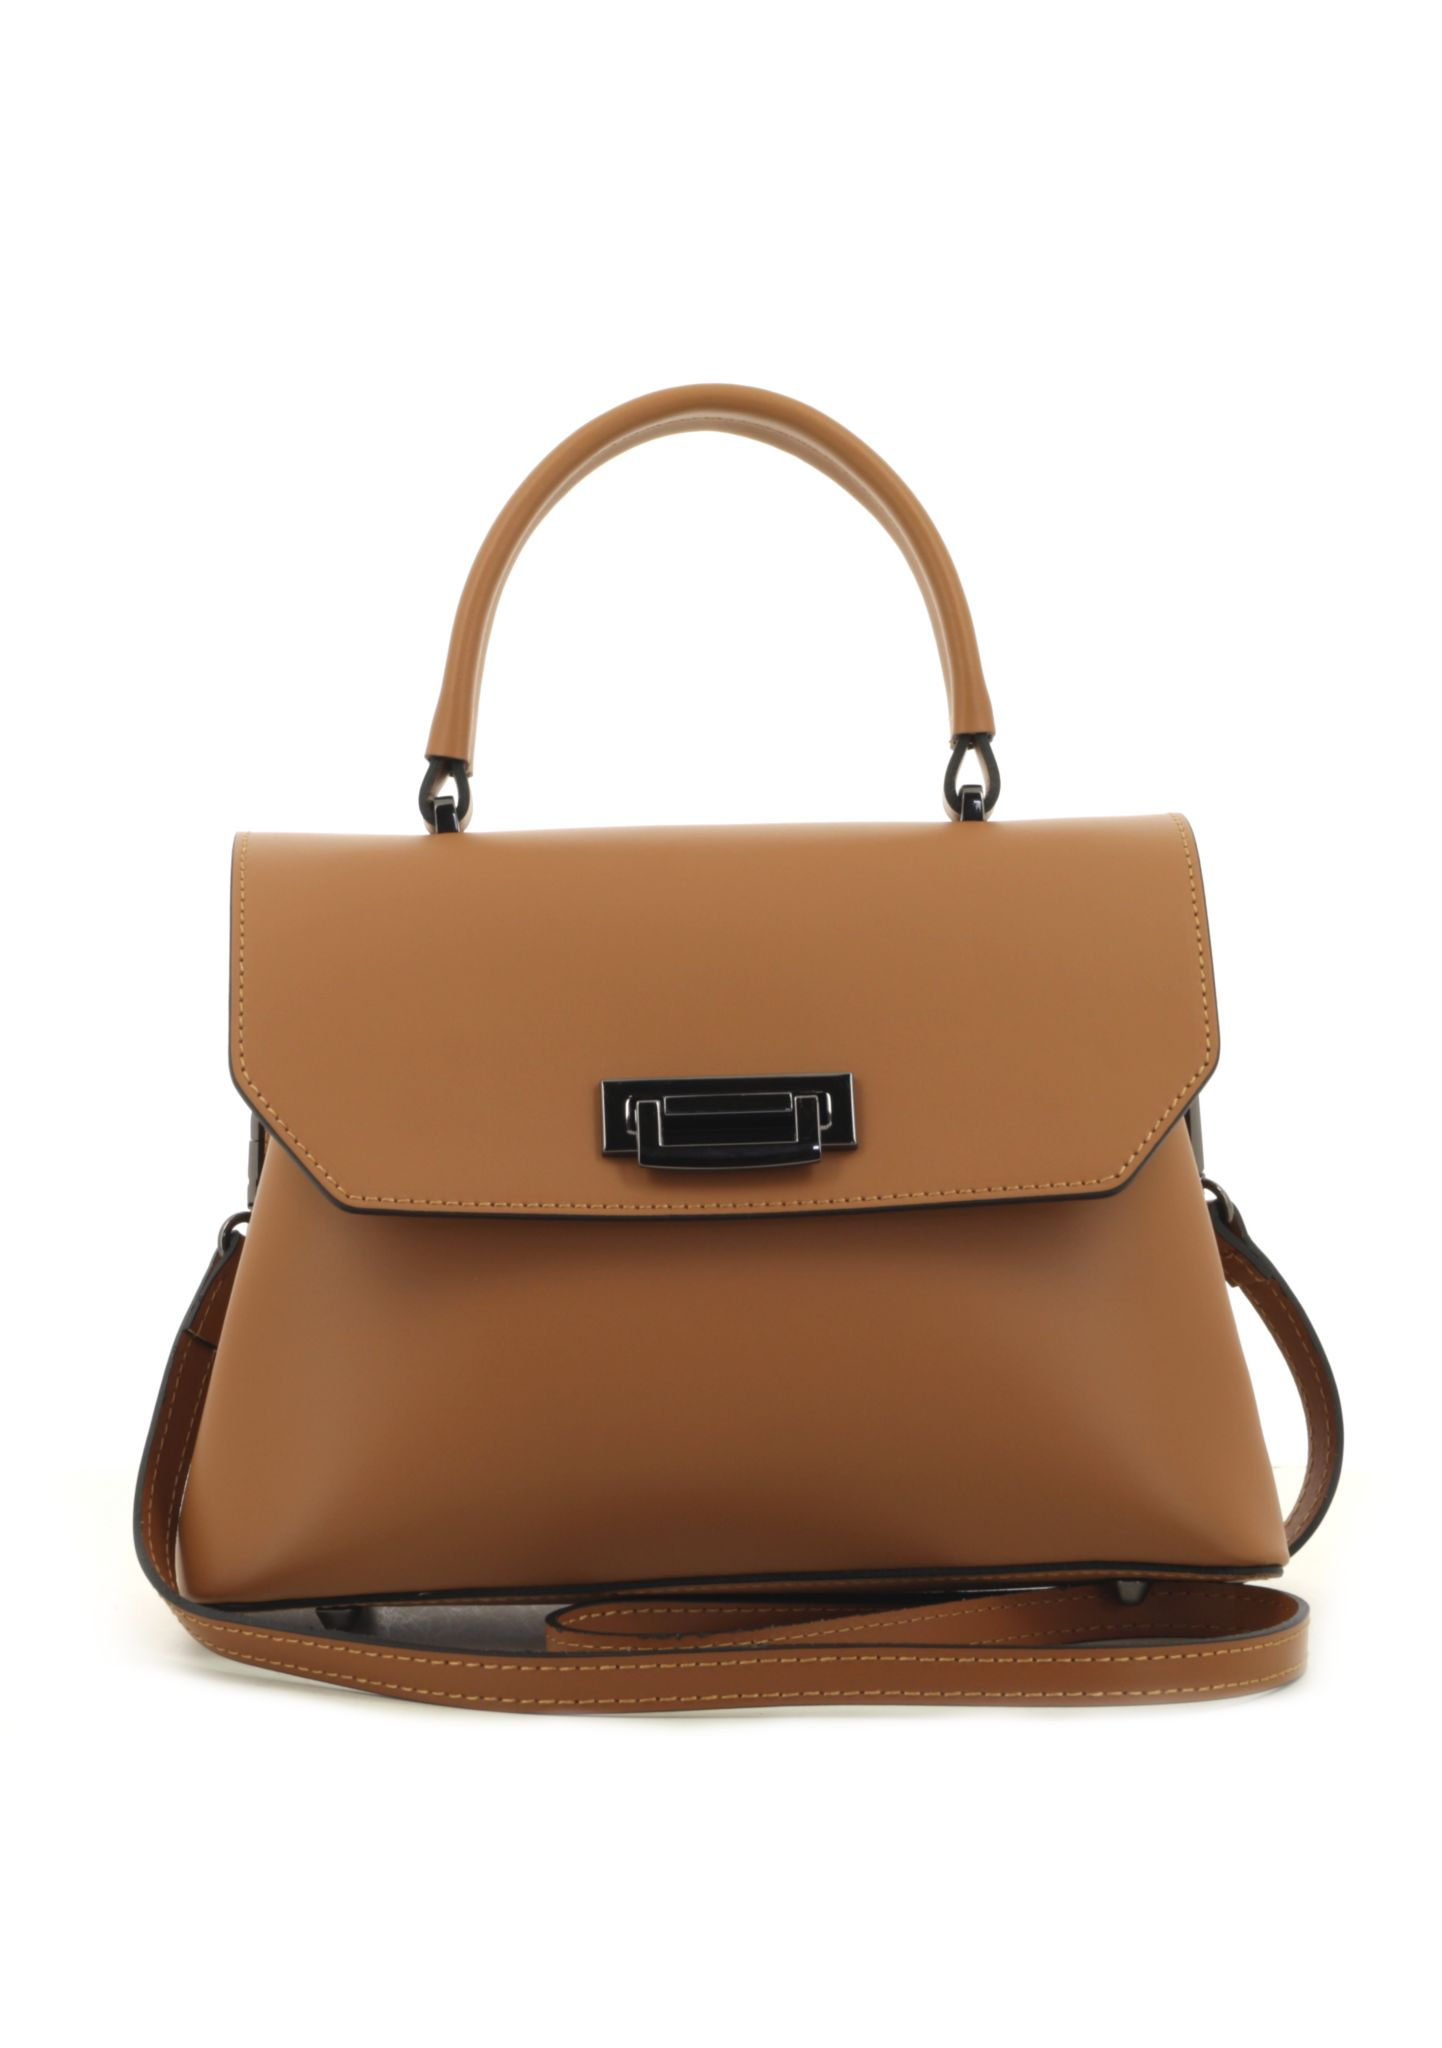 Cognac Ruga Leather Handbag With Detachable Strap 034 detail 6